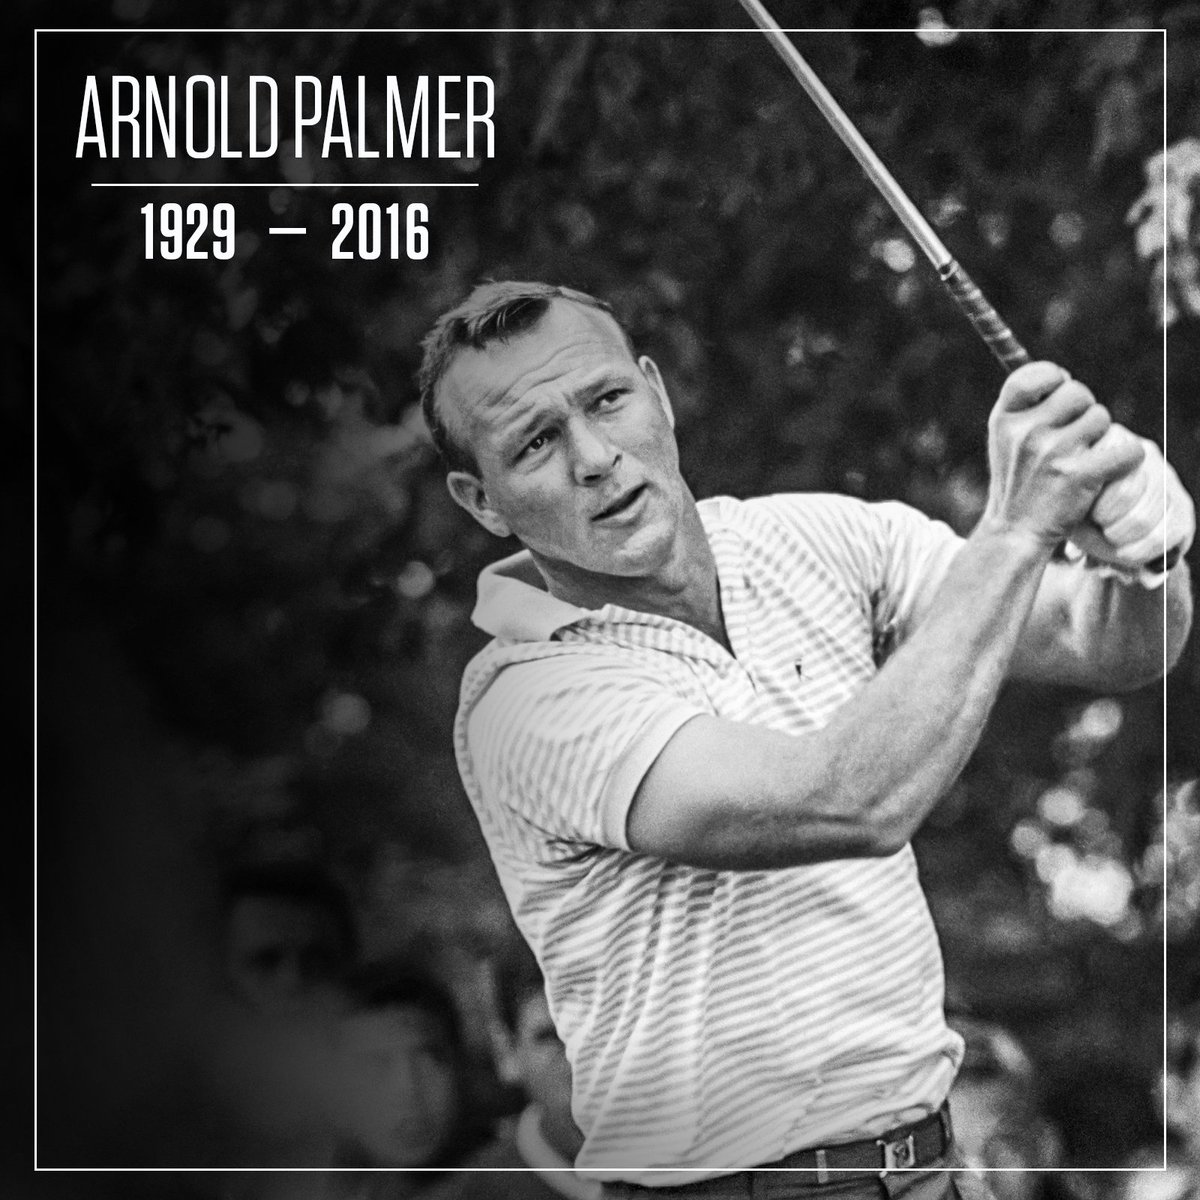 Golf has lost an icon.   The legendary Arnold Palmer has died at 87. https://t.co/RvCur6b2Ih